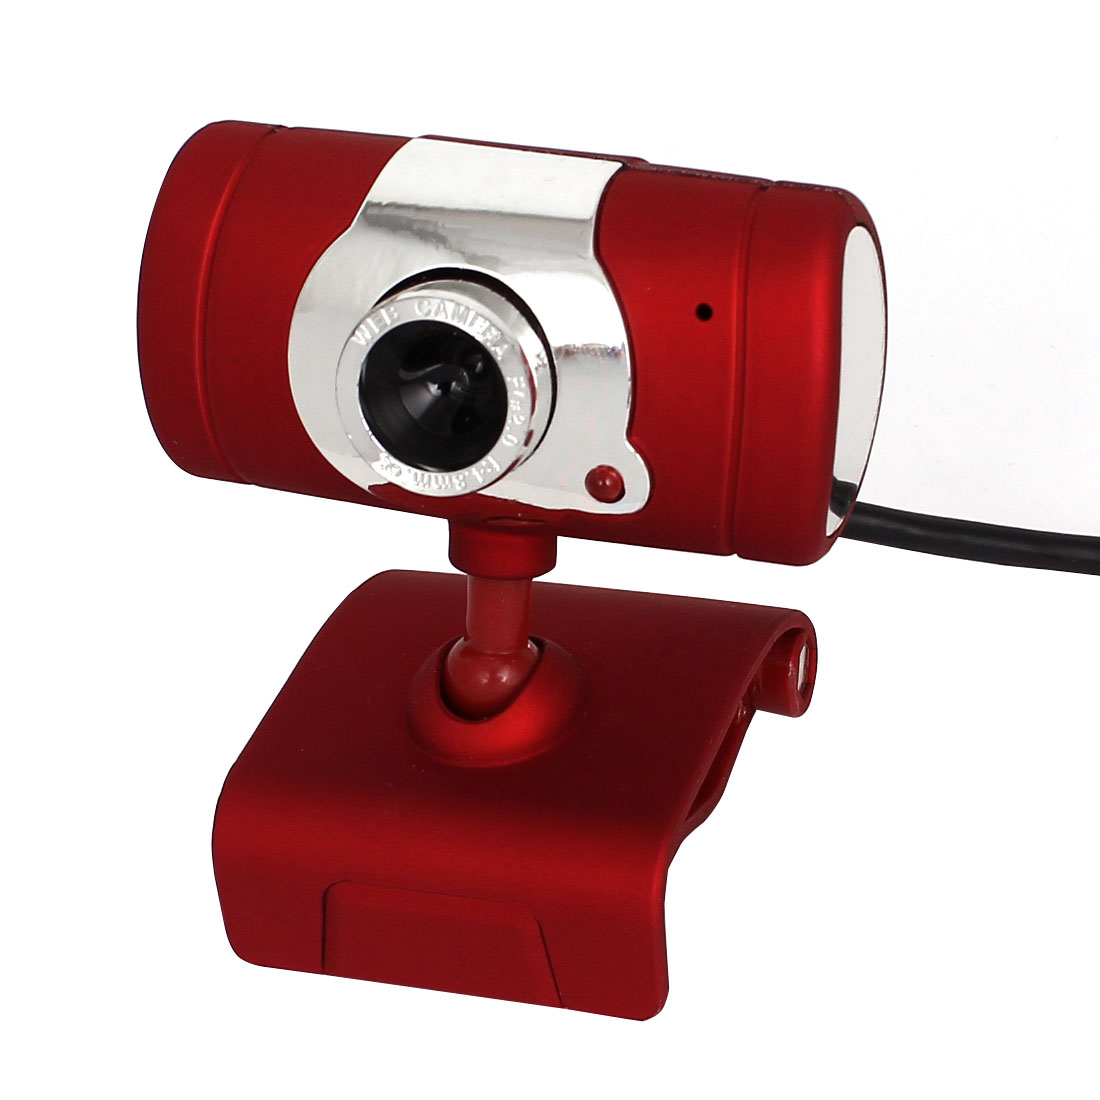 Rotatable Clip-on USB 2.0 Webcam PC Camera Red Silver Tone w Microphone